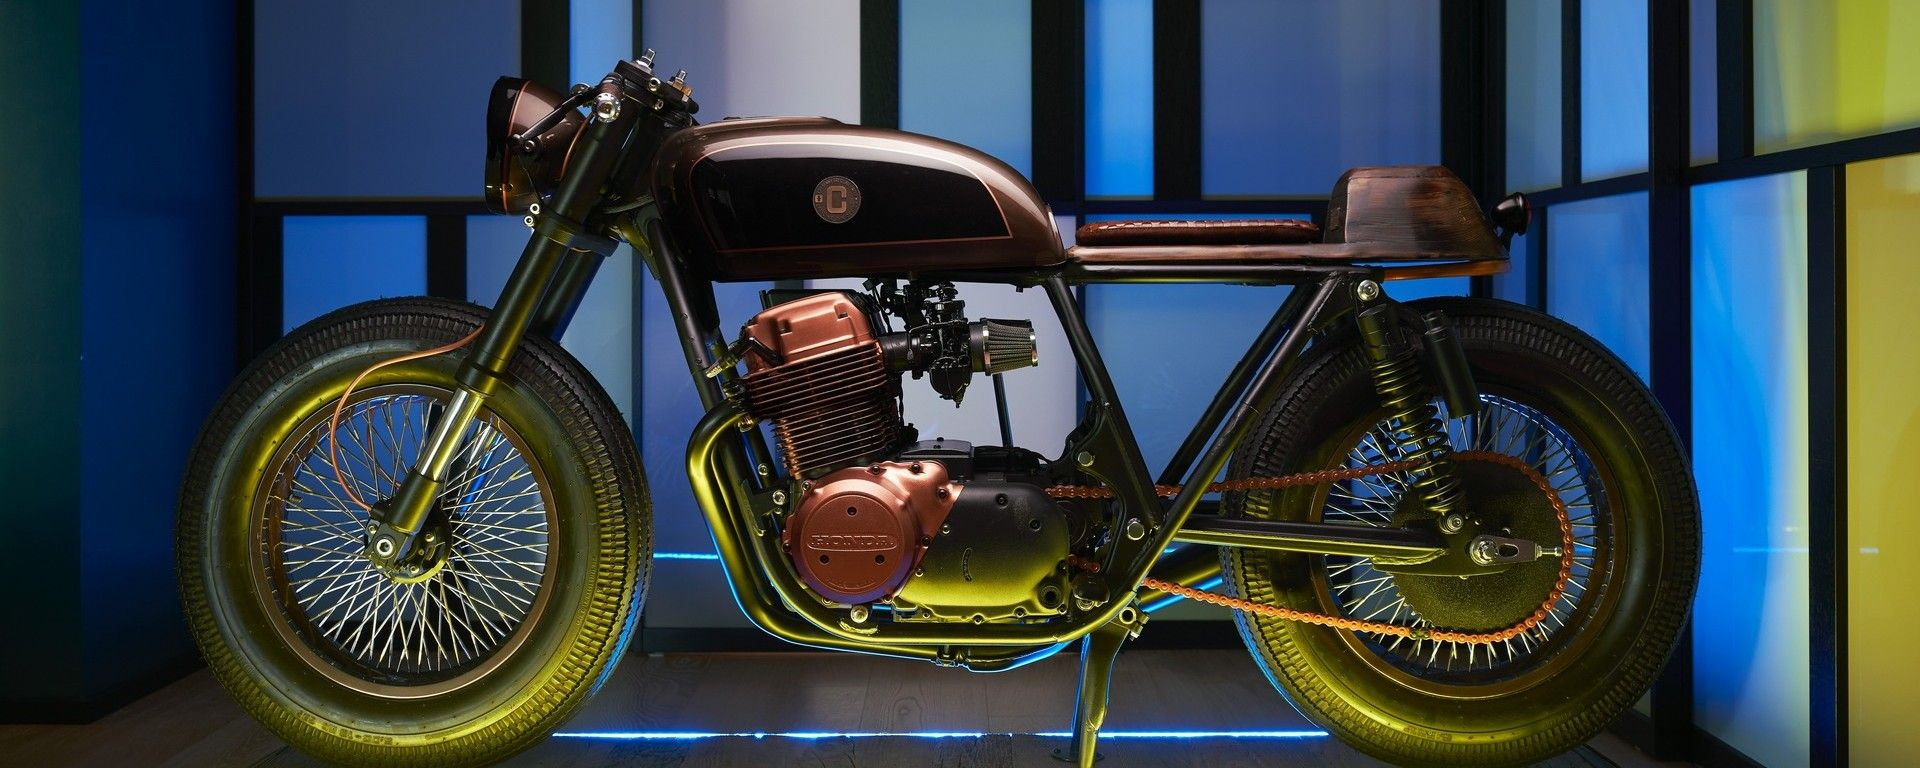 Officine GP Design: Arte e motori si fondono per dar vita a The Mood